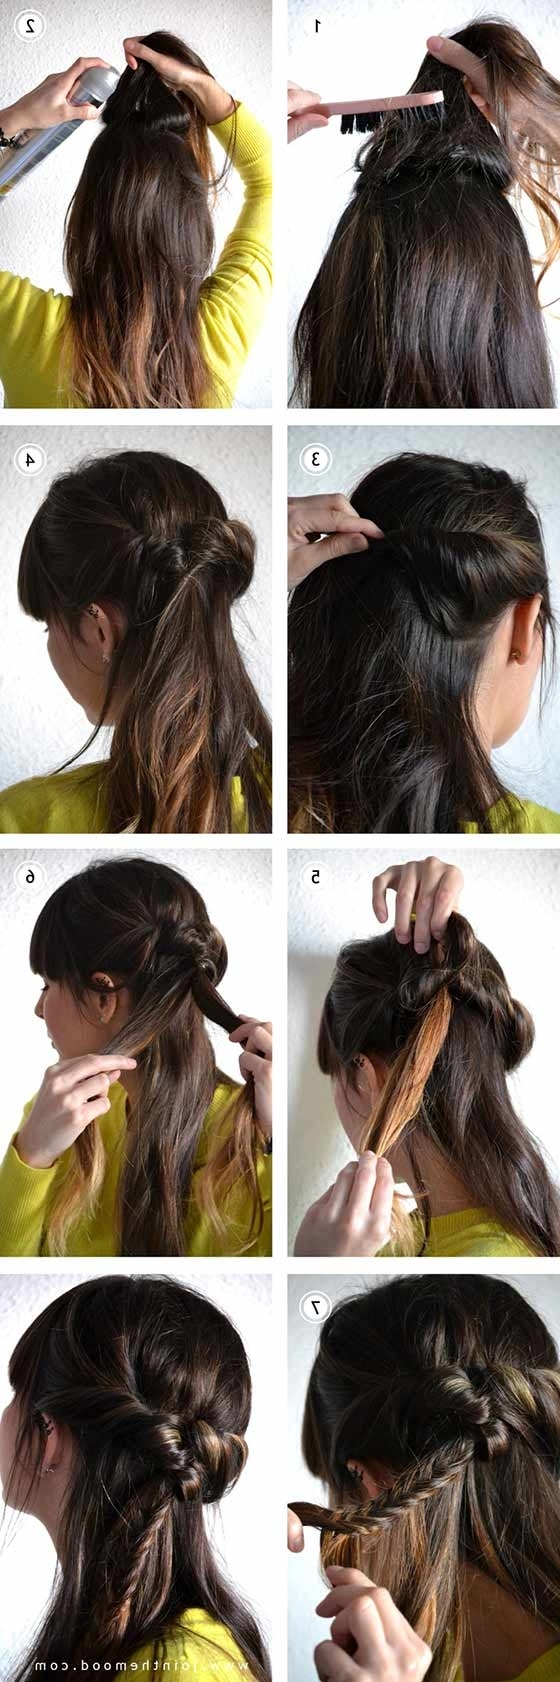 Latest Loose 3D Dutch Braid Hairstyles Pertaining To 40 Braided Hairstyles For Long Hair (View 13 of 20)